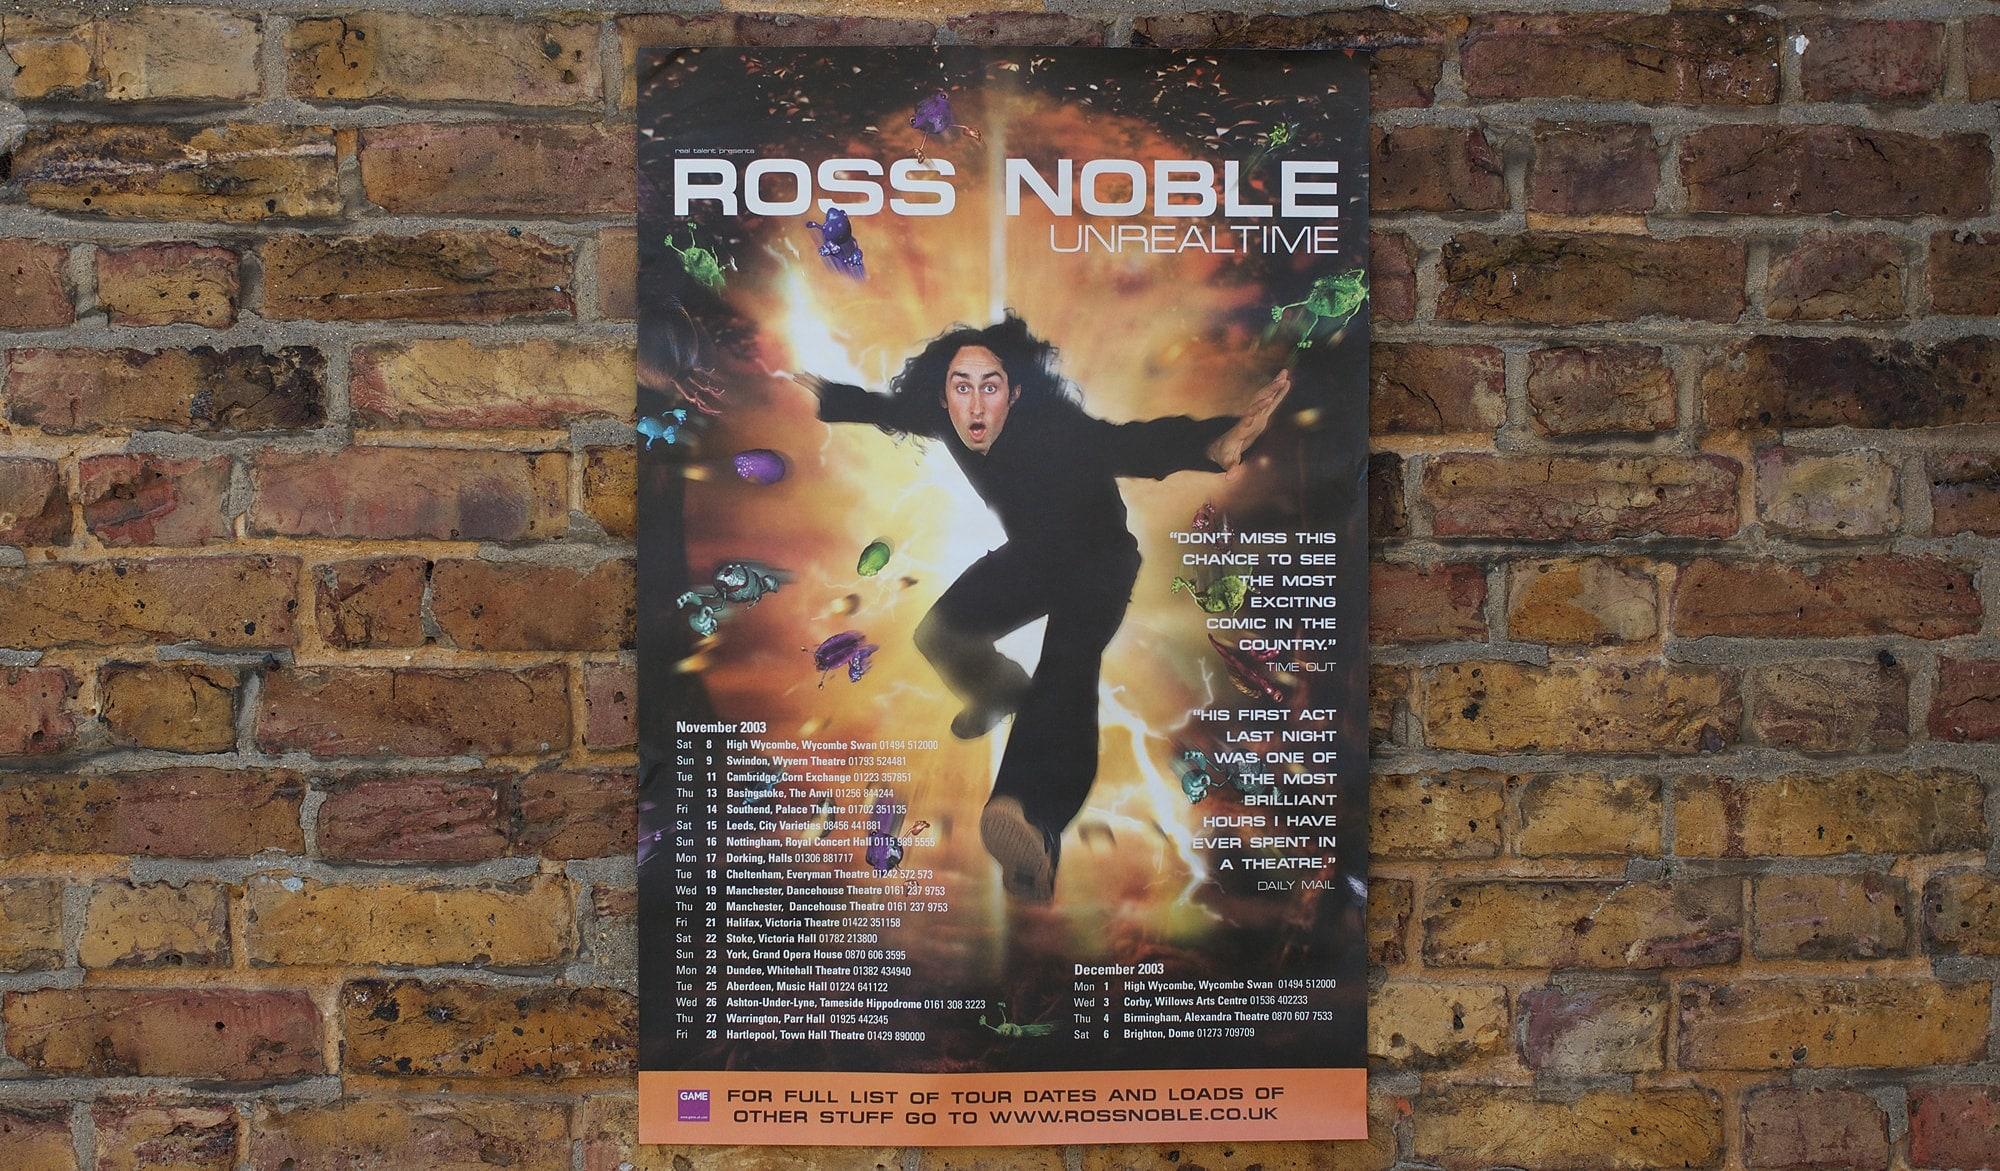 Ross Noble - Unrealtime DVD - poster